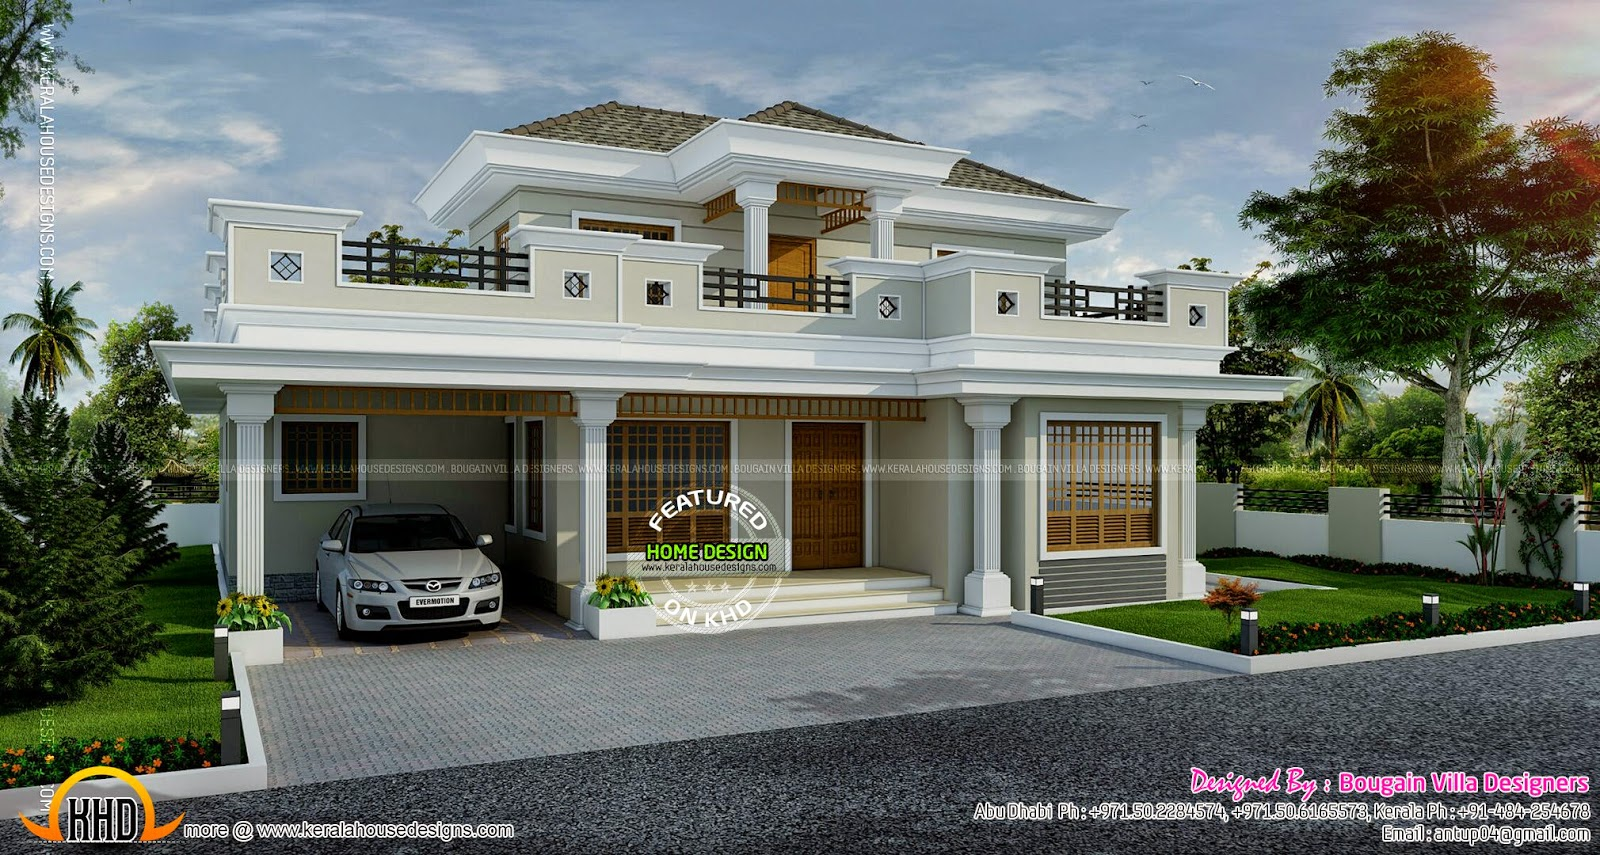 stylish-house-design.jpg